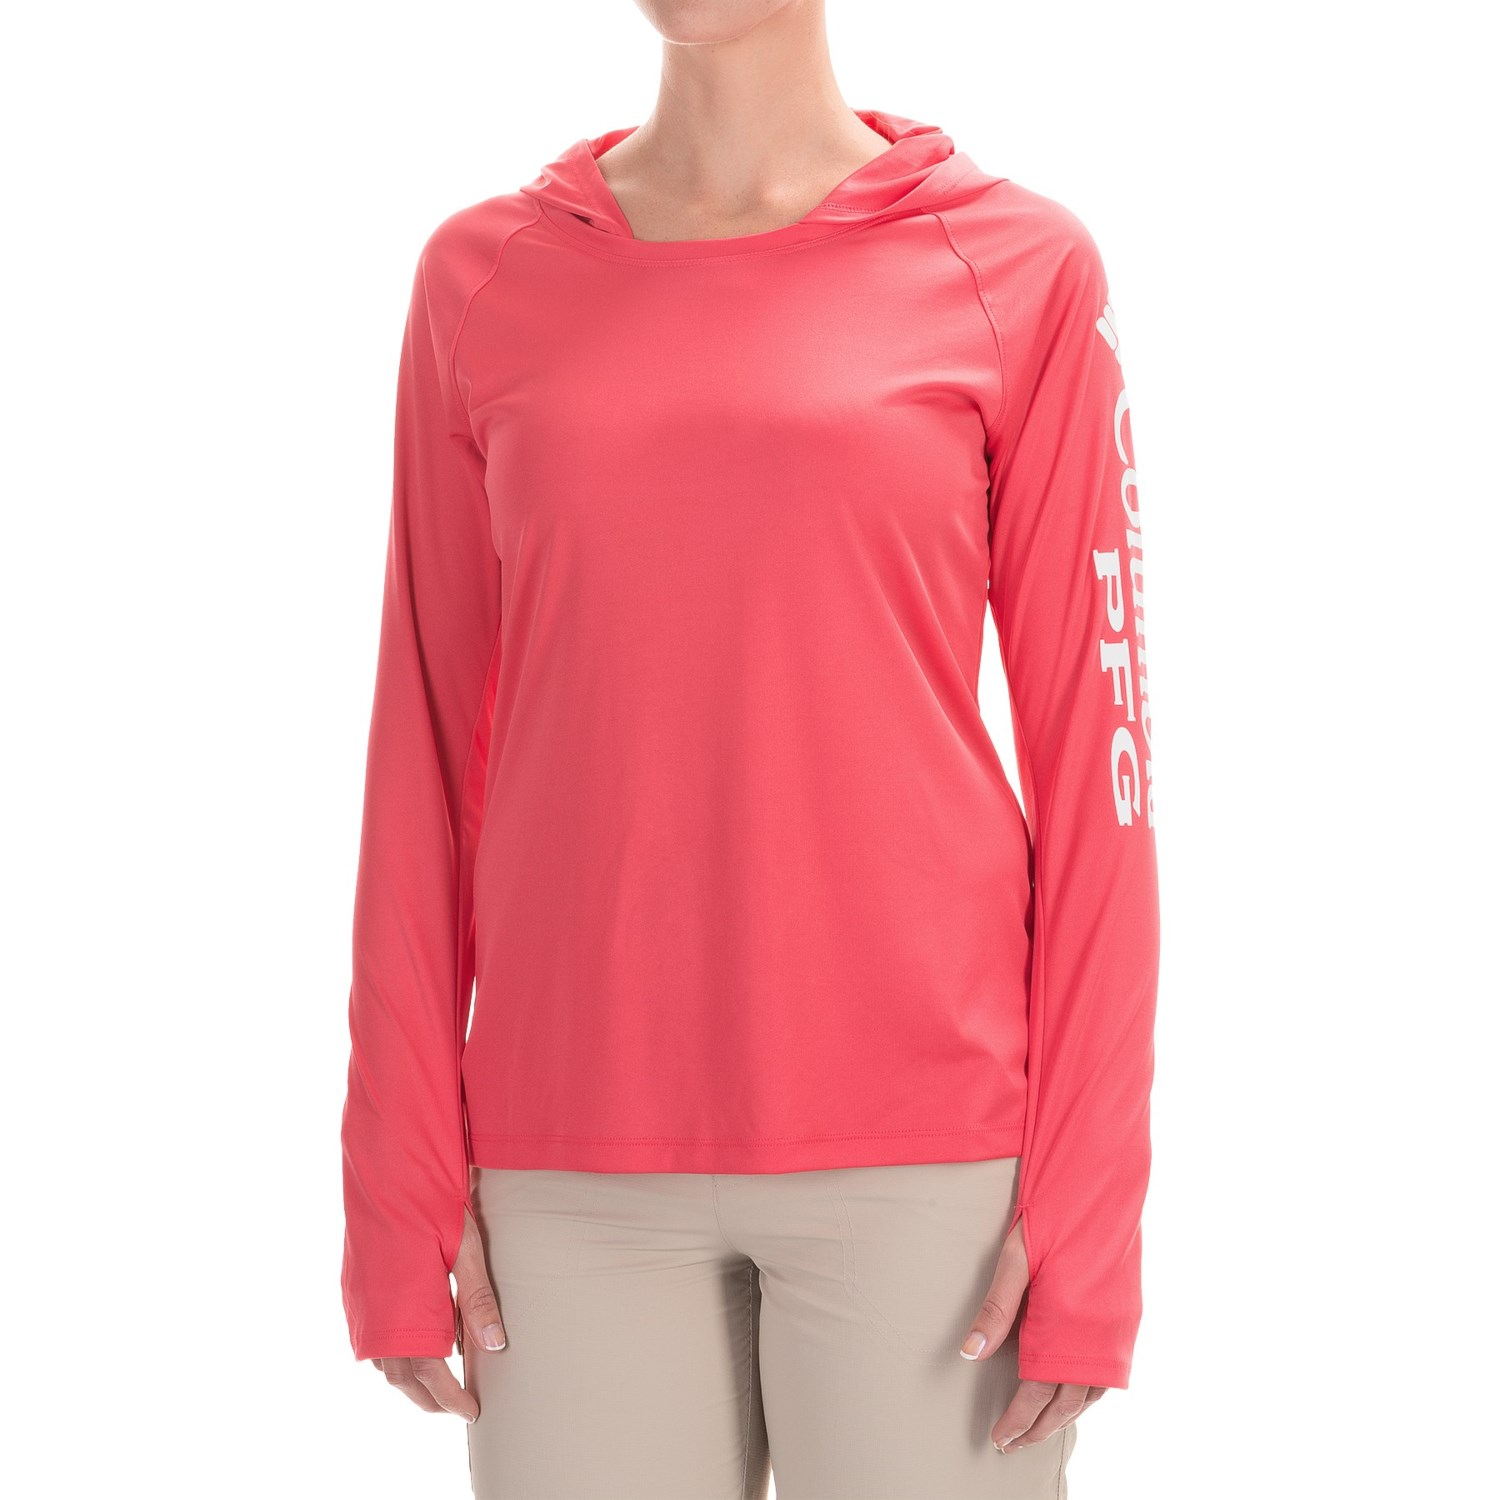 Columbia sportswear tidal hooded pfg shirt for women for Columbia shirts womens pfg